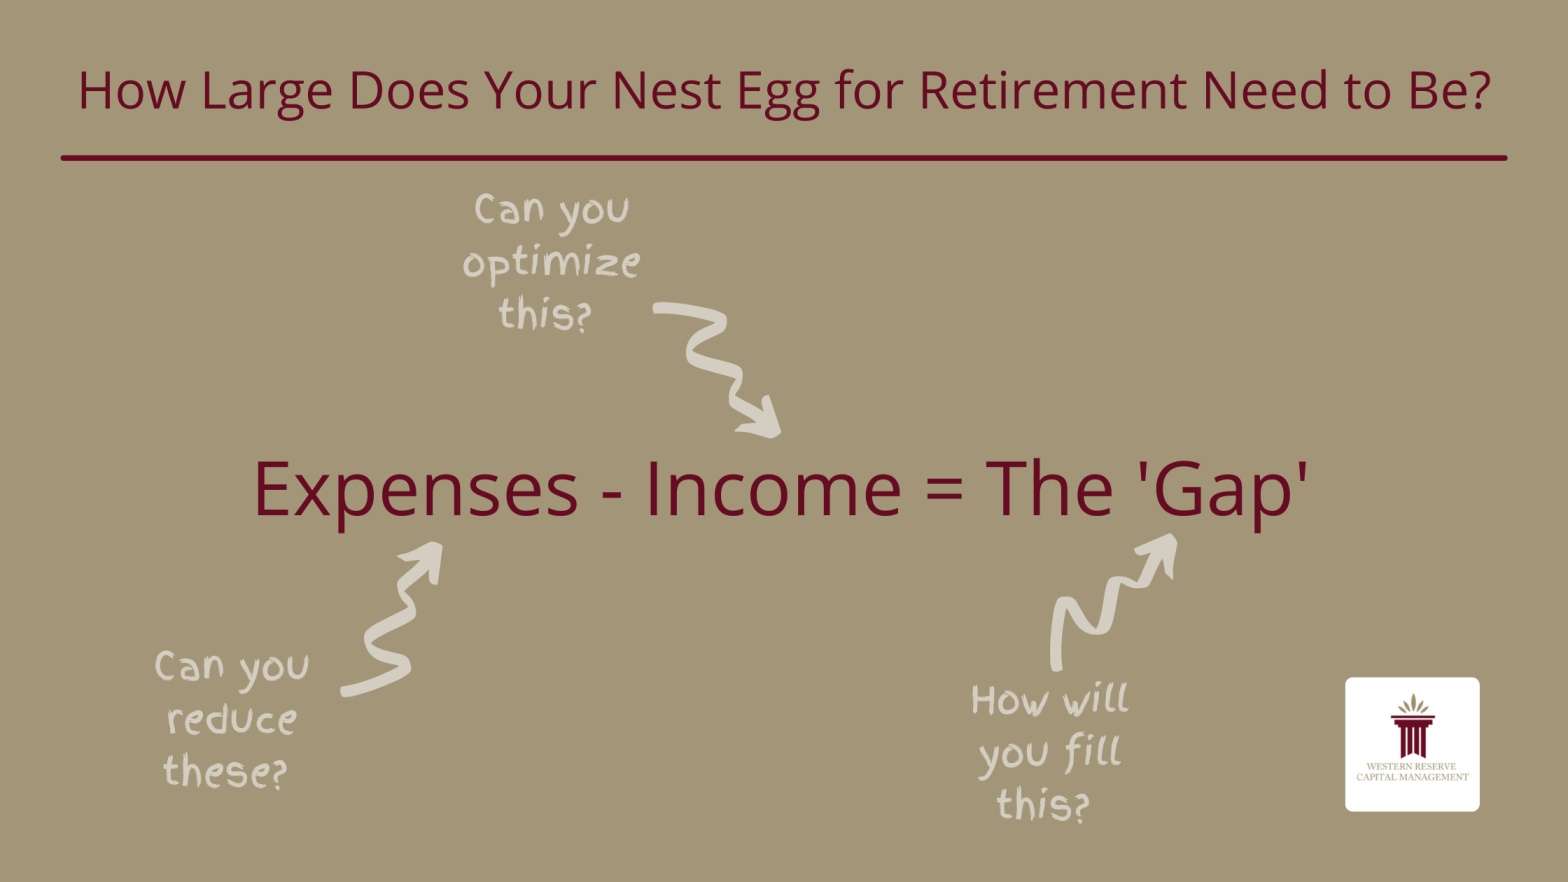 How Large Does Your Nest Egg for Retirement Need to Be?